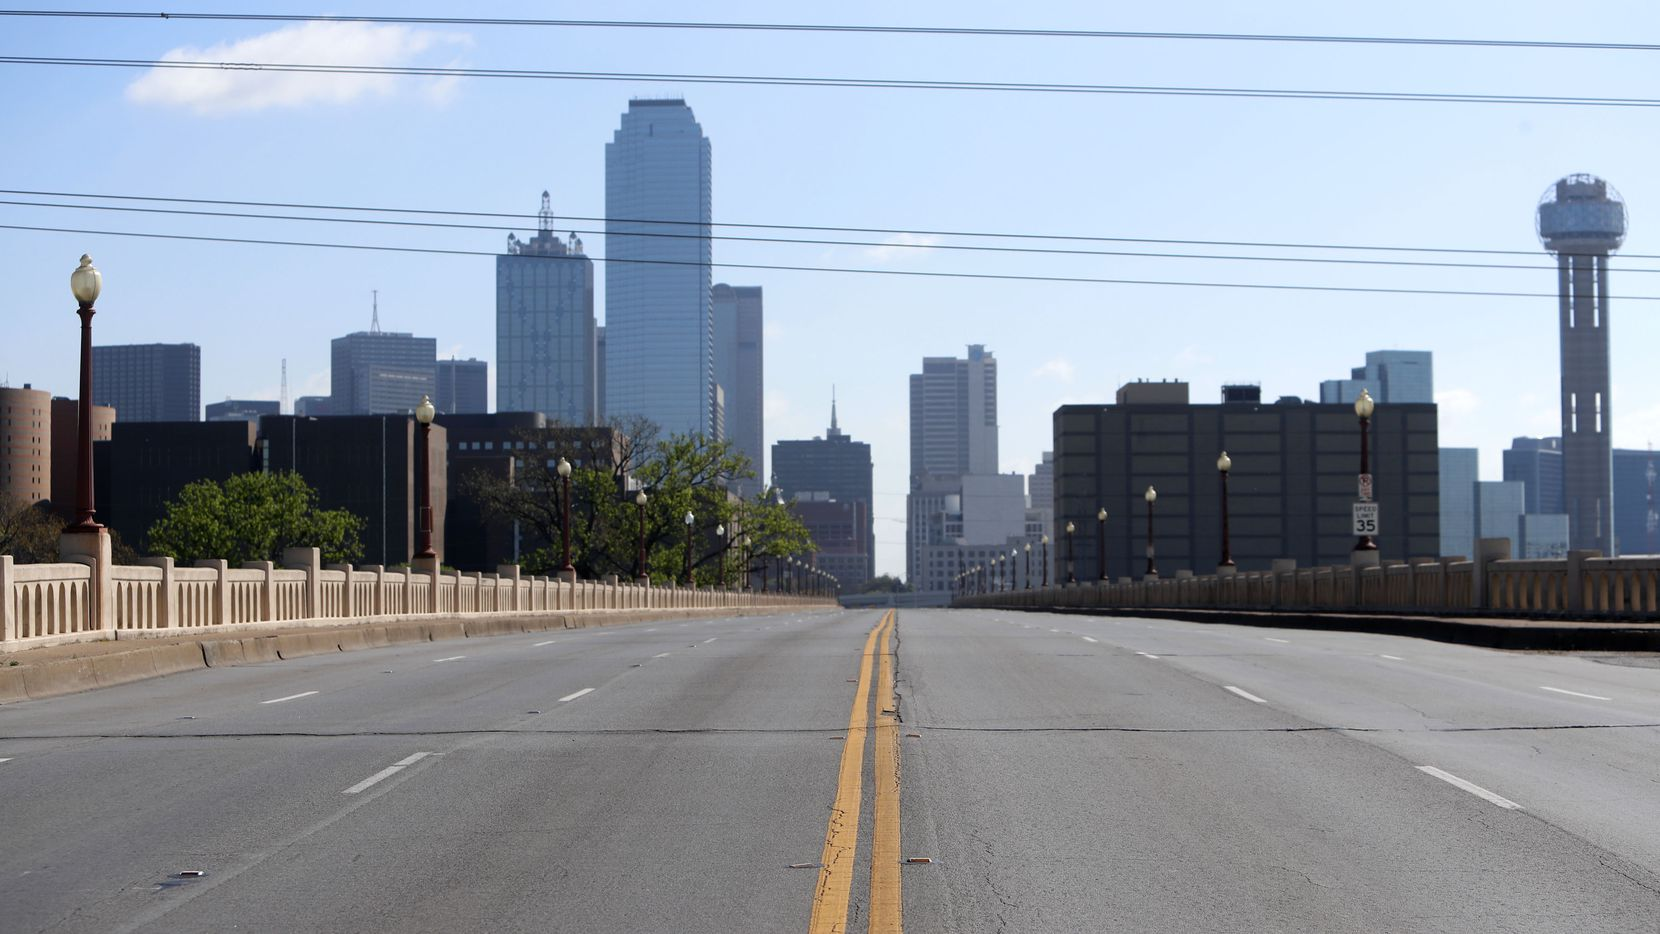 With Dallas County under a shelter in place order due to the COVID-19 disease, a normally busy road sits empty leading into downtown Dallas on March 24.